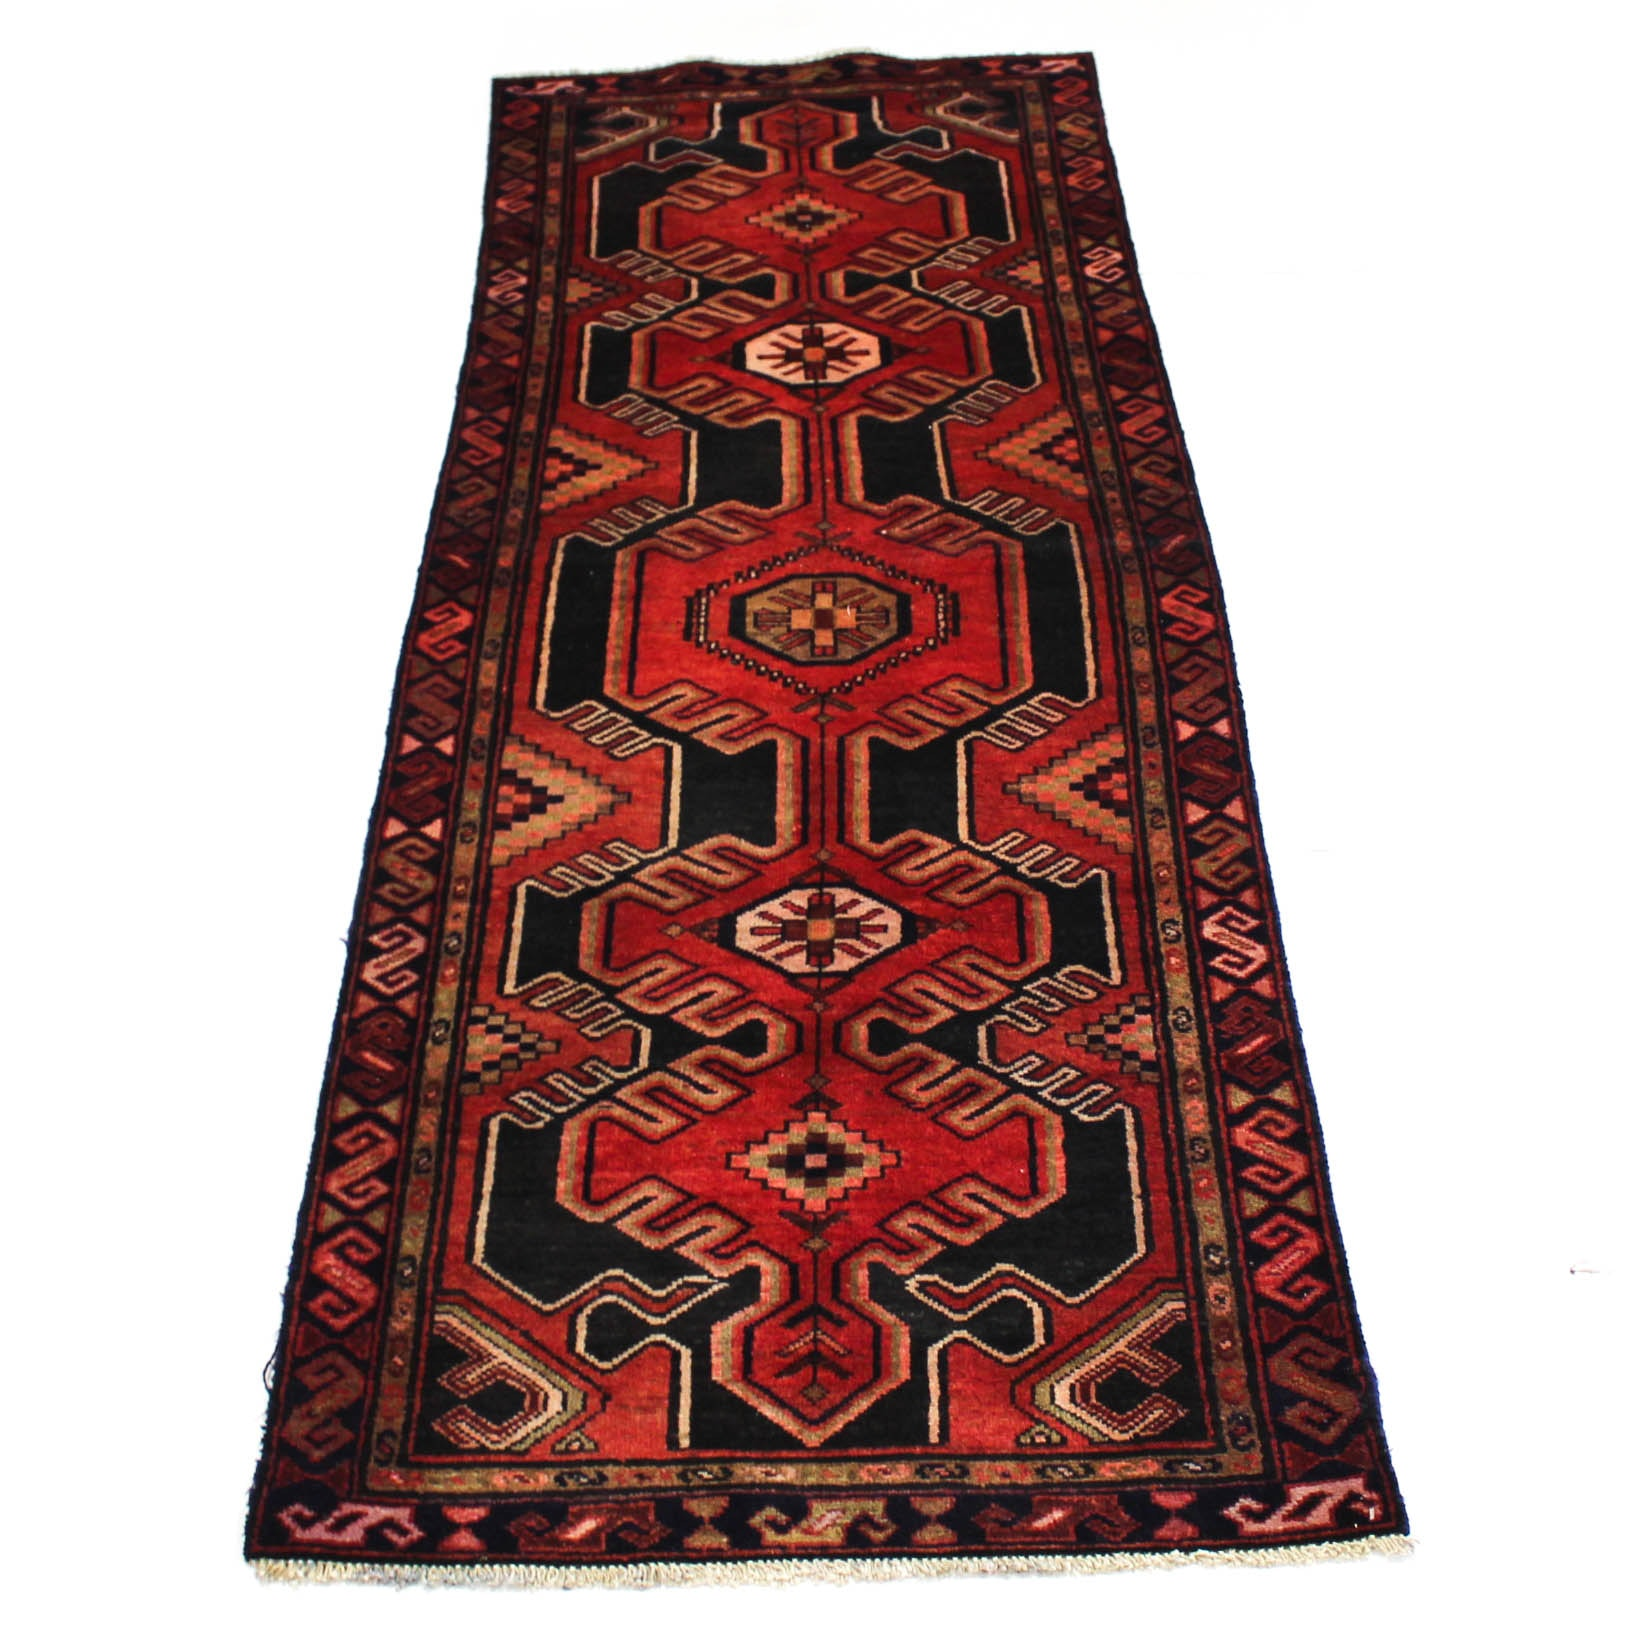 3'6 x 9' Semi-Antique Hand-Knotted Persian Northwest Carpet Runner